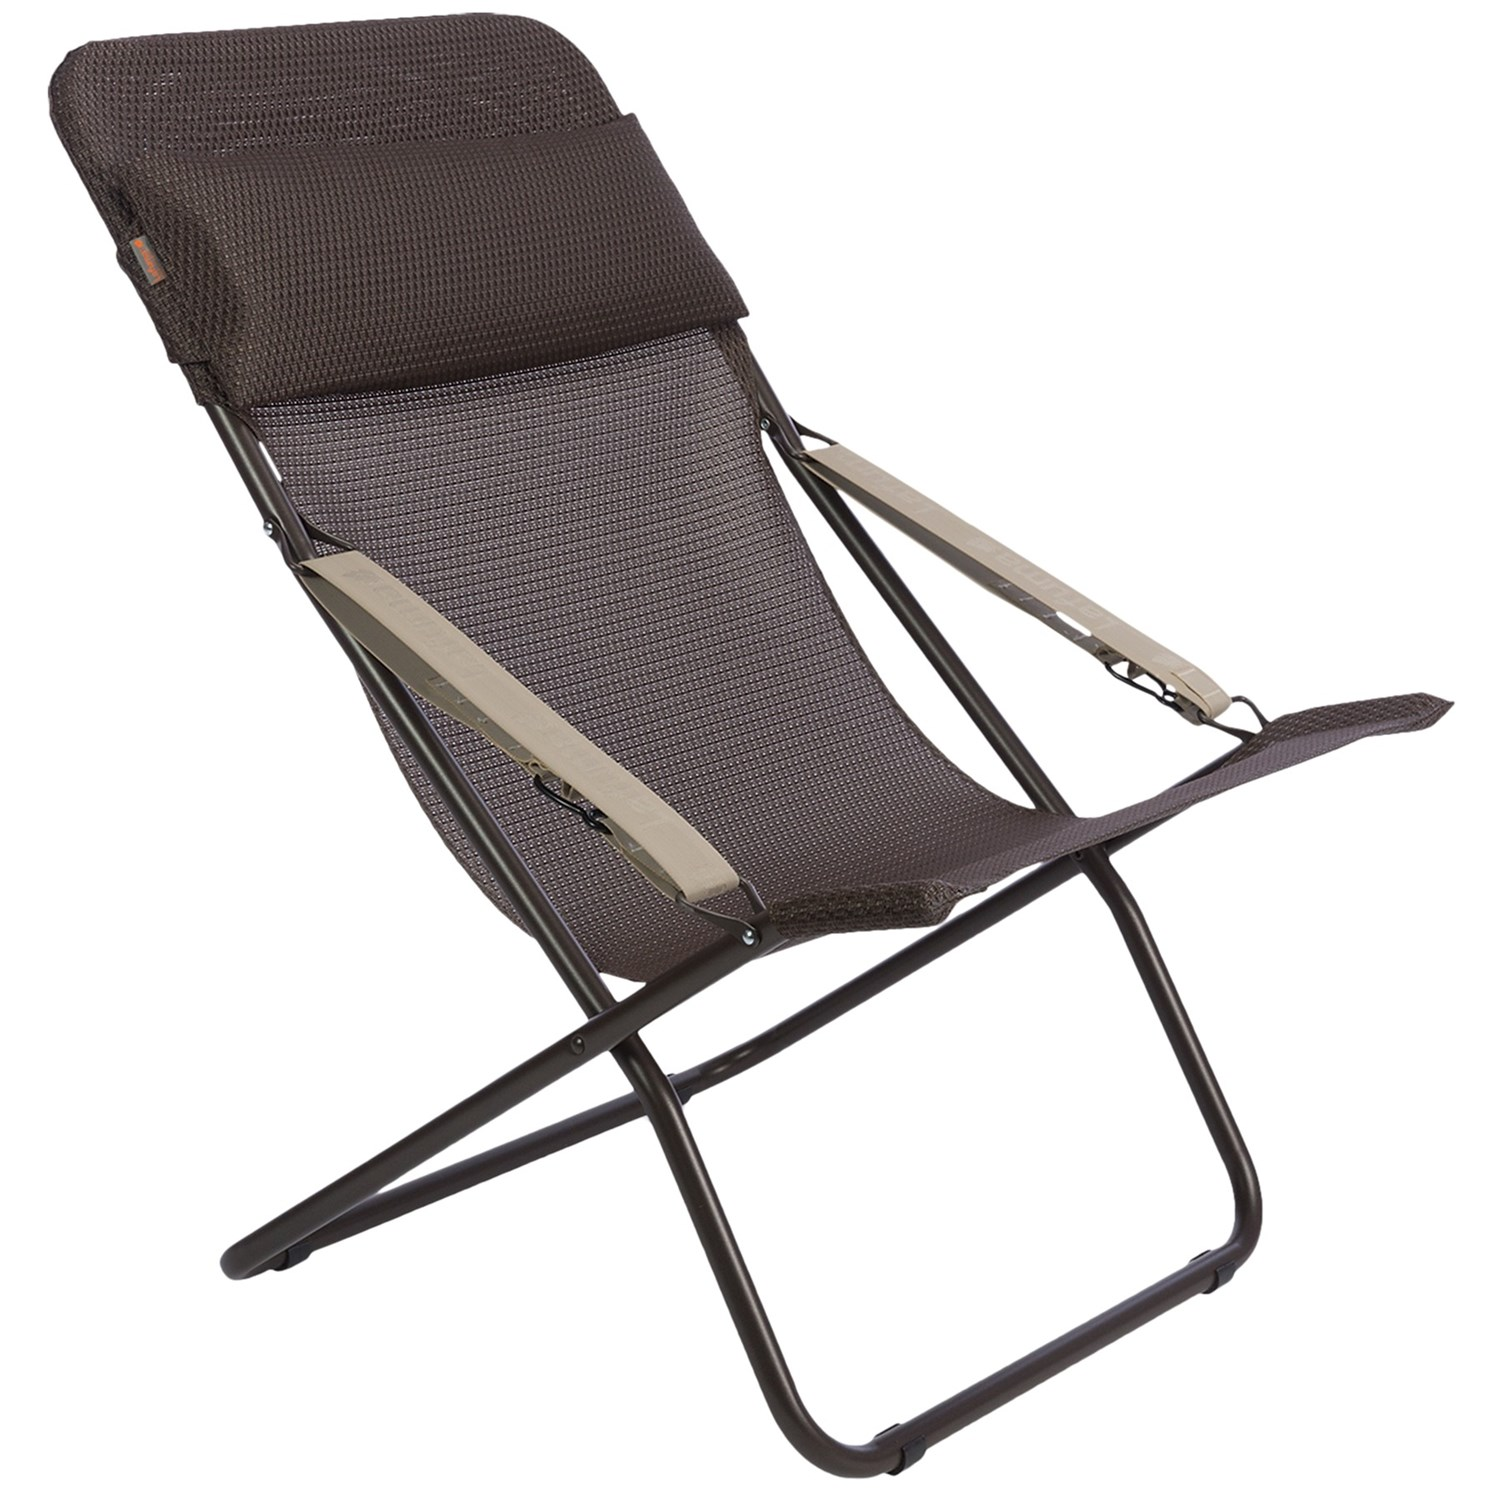 black chairs target metal chair accessories brief overview about the folding patio